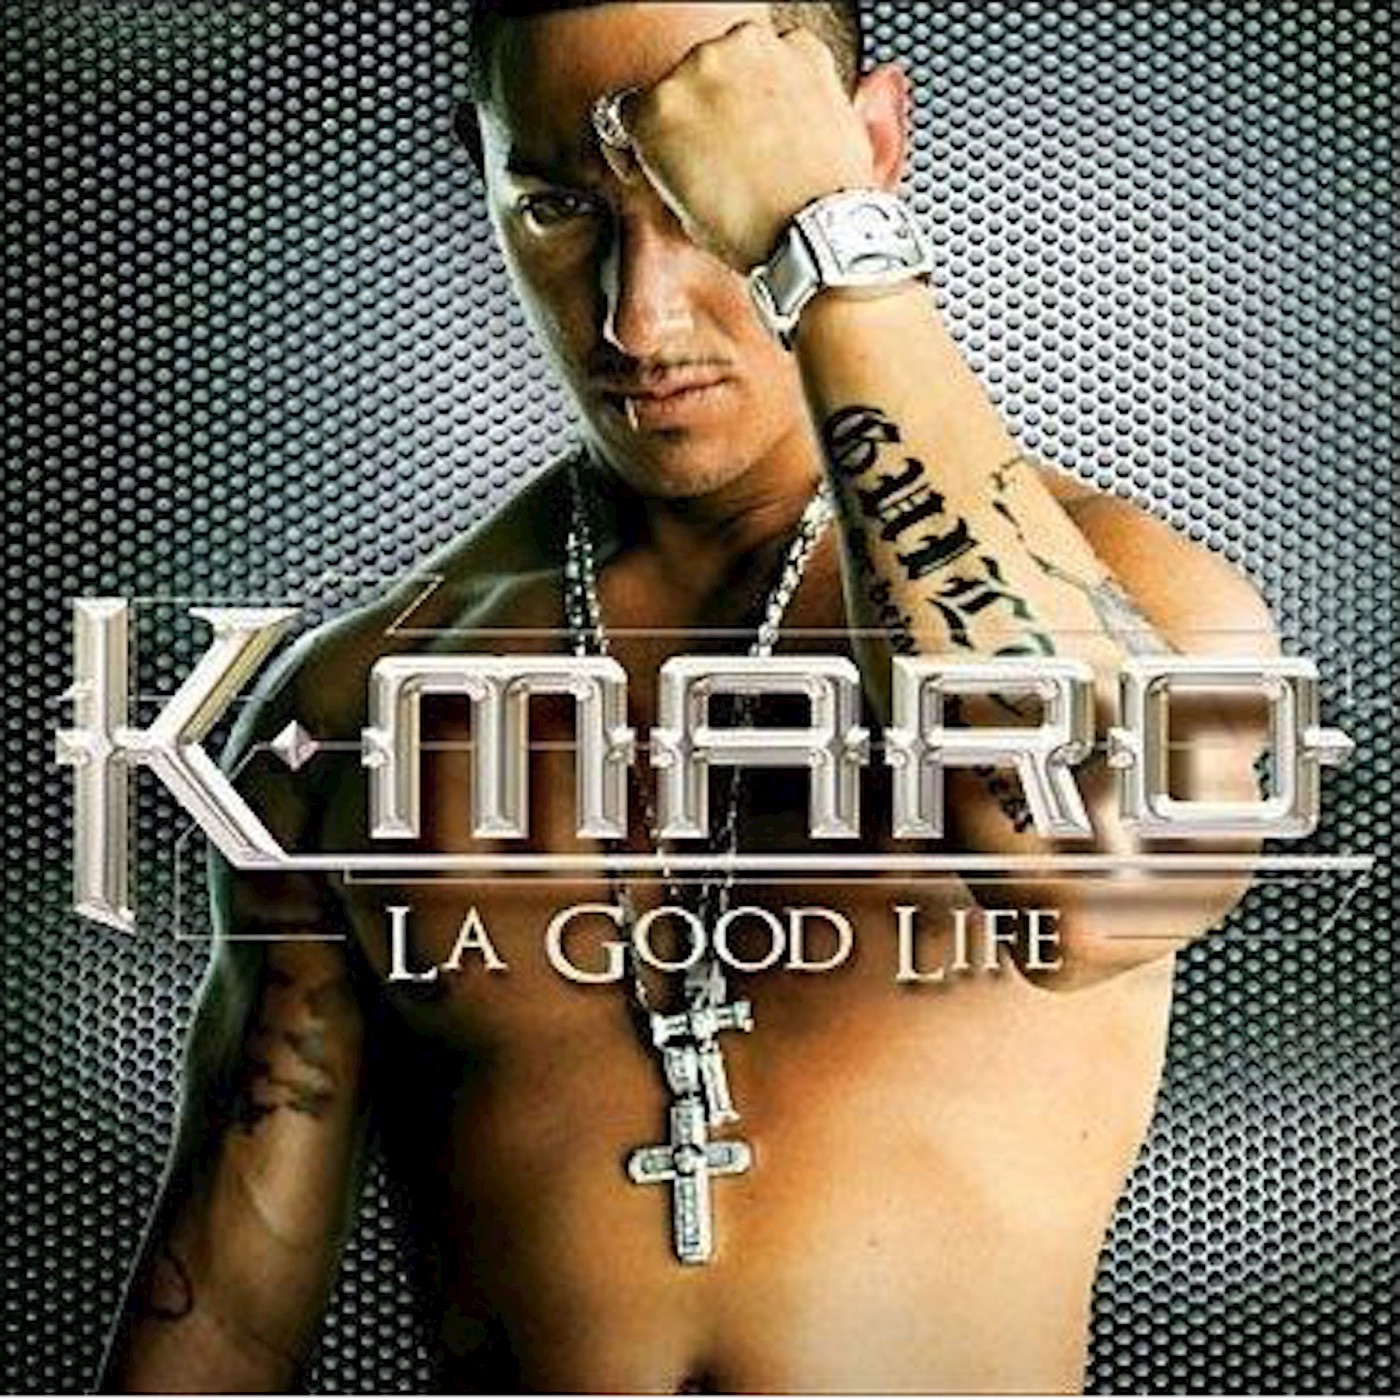 K-Maro album La Good Life